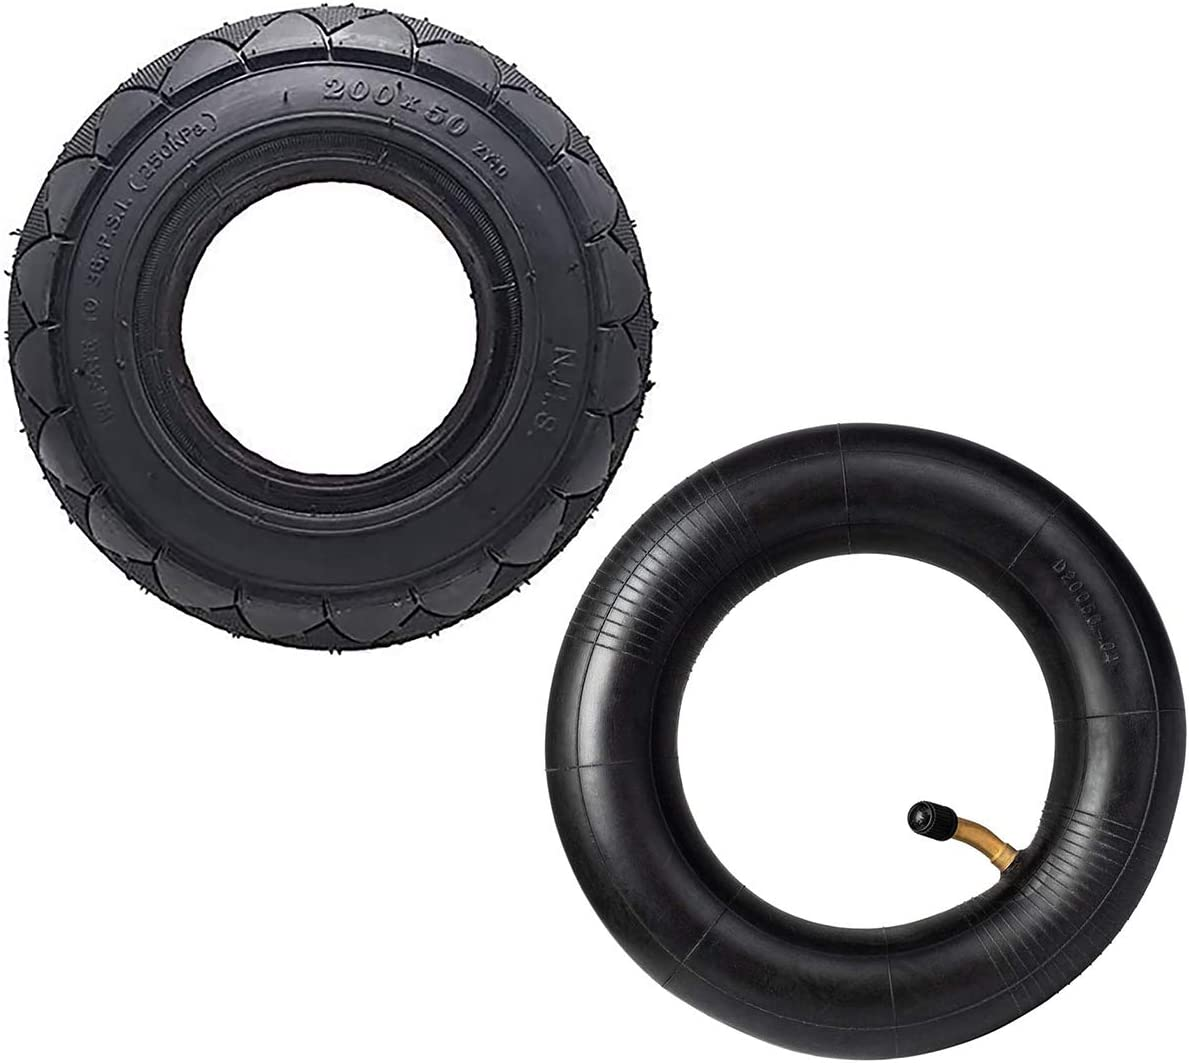 Power Core E100 eSpark with 8 Inch Universal Tire /& Inner ePunk Crazy Cart Dune Buggy E200 E150 PowerRider 360 200X50 Tire /& Inner Tube Set Replacement Electric Scooter Razor E100